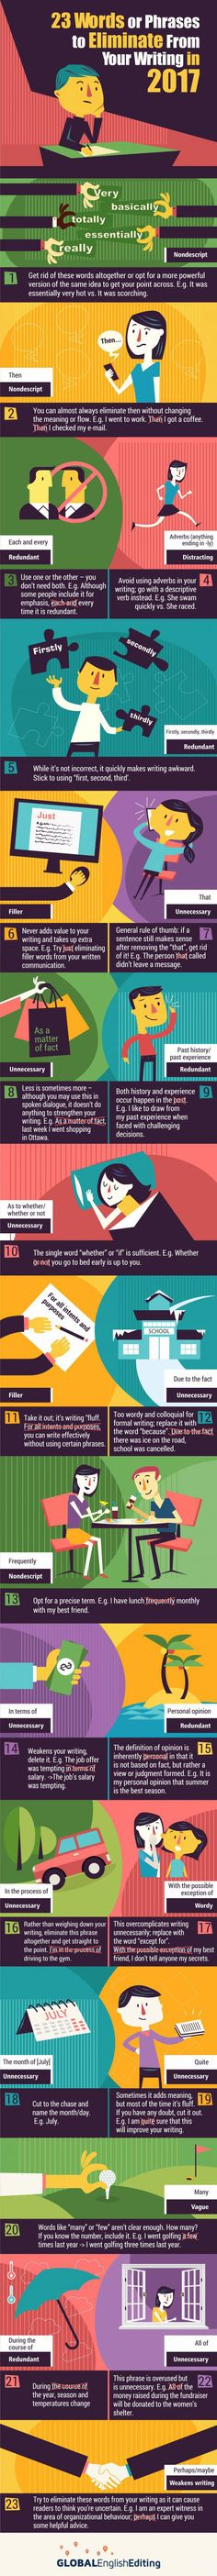 Eliminate-words- an infographic-resized -- by Brendan Brown on Global English Editing Site: